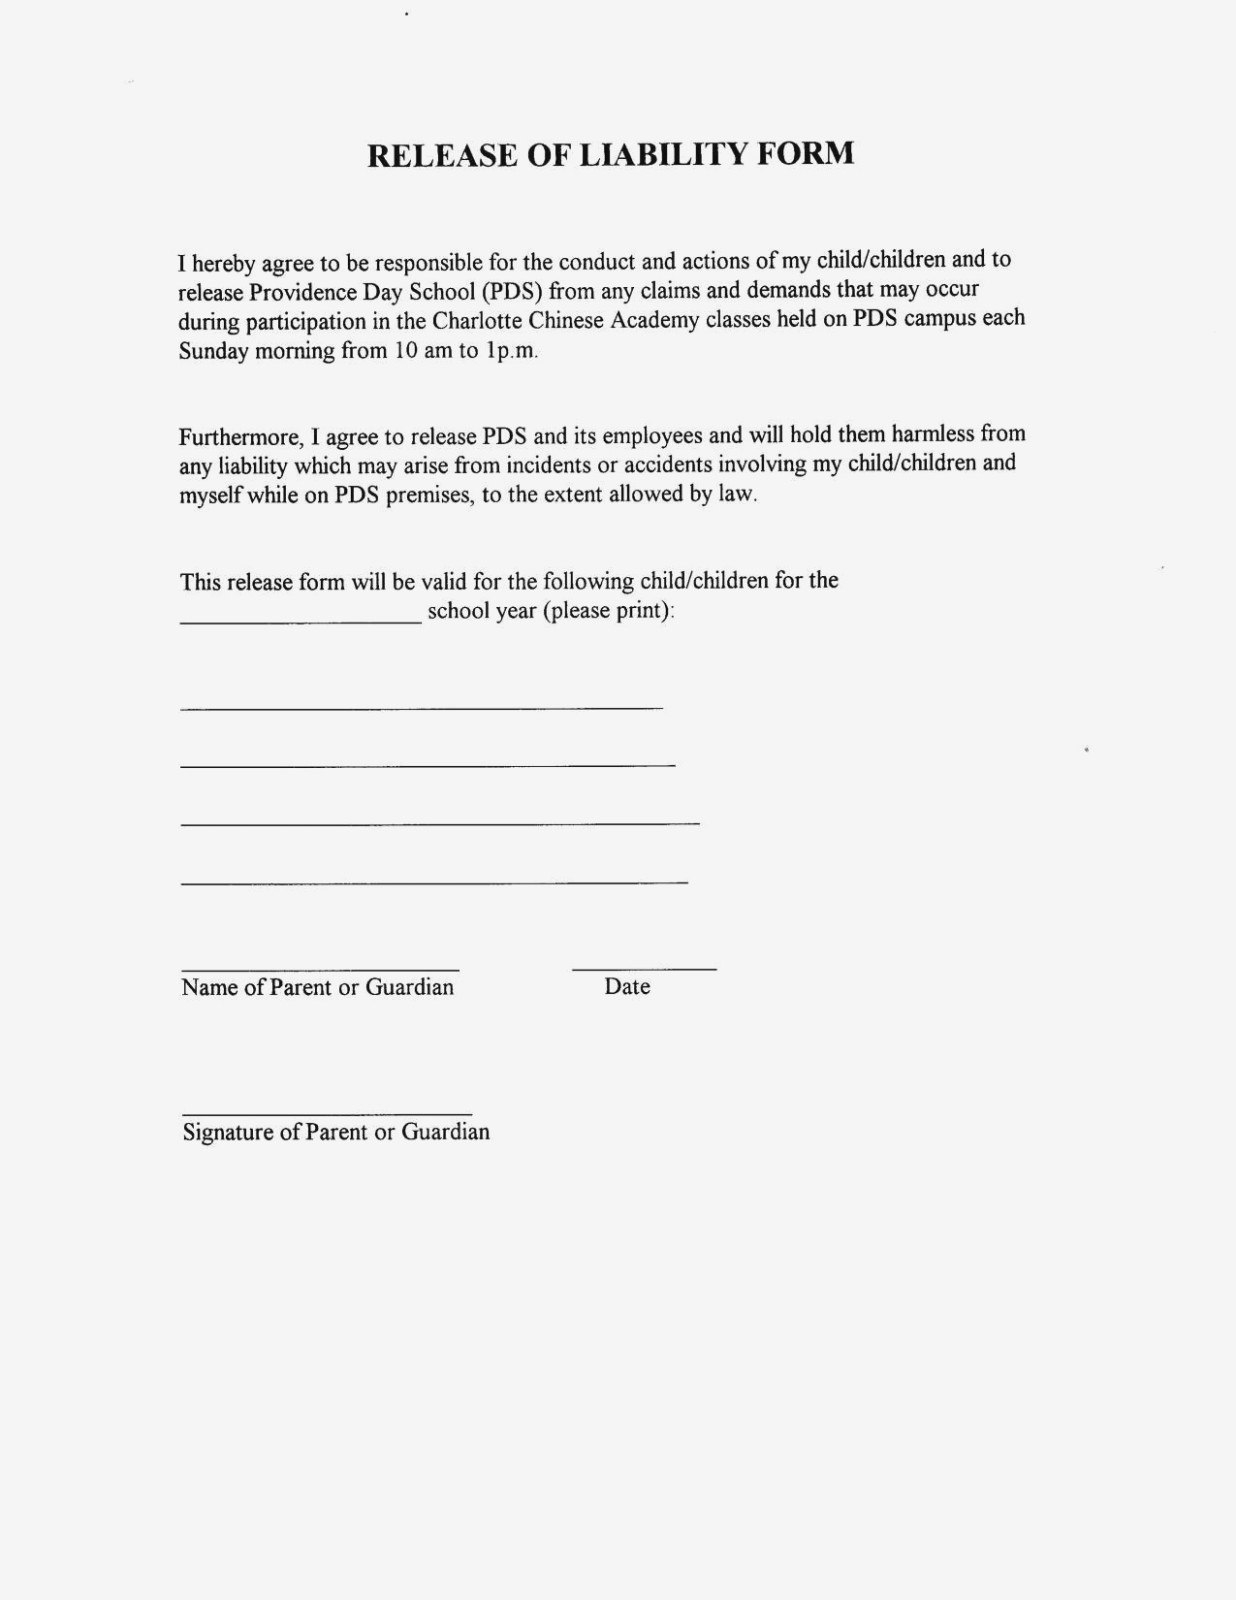 Master Risk Participation Agreement Template Awesome Eur Lex For Master Risk Participation Agreement Template